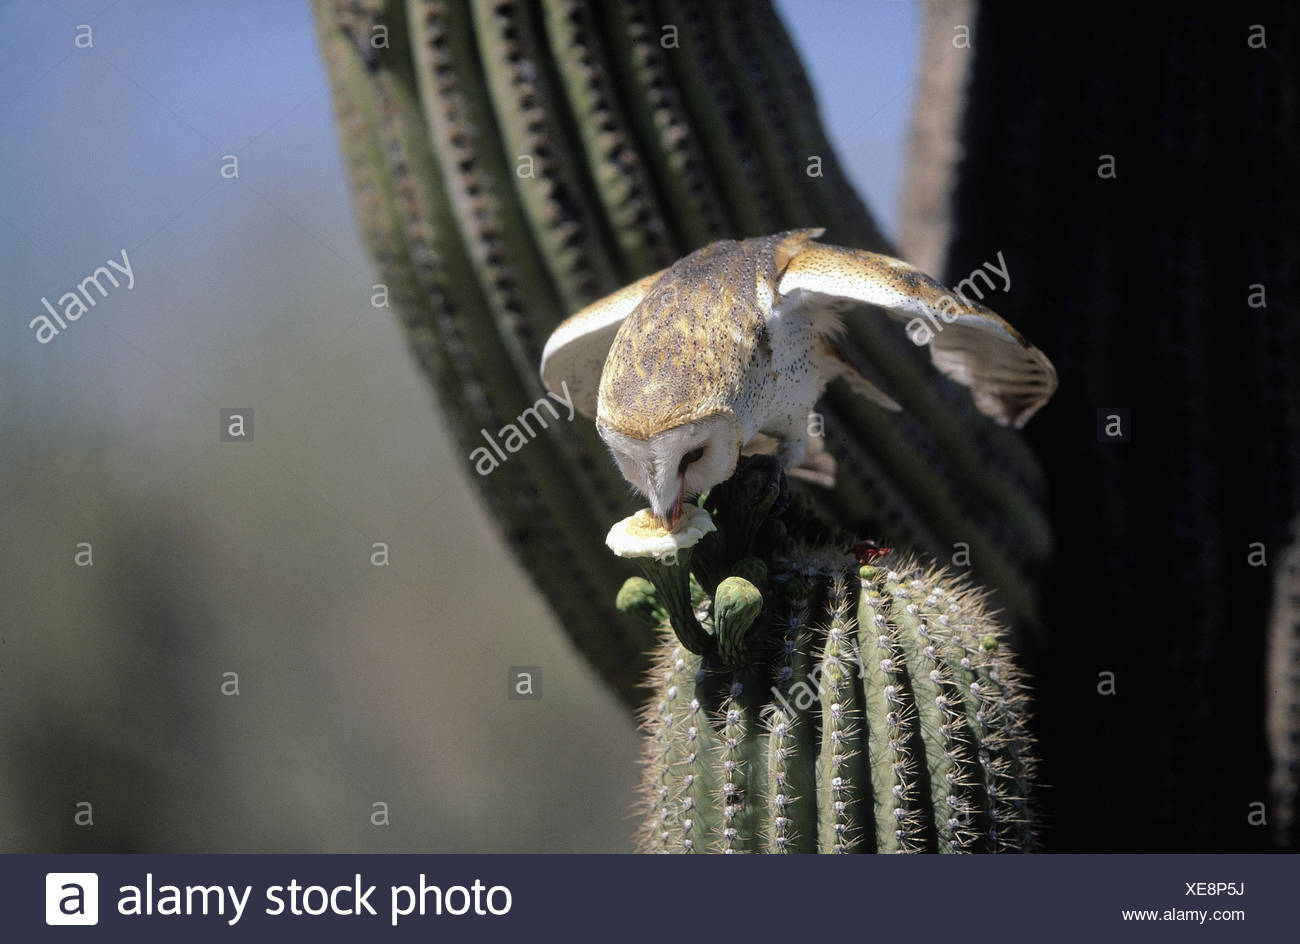 Barn Owl (Tyto alba), sitting on Saguaro cactus and drinking from cactus flower, behavioural adaption on semidesertic - Stock Image